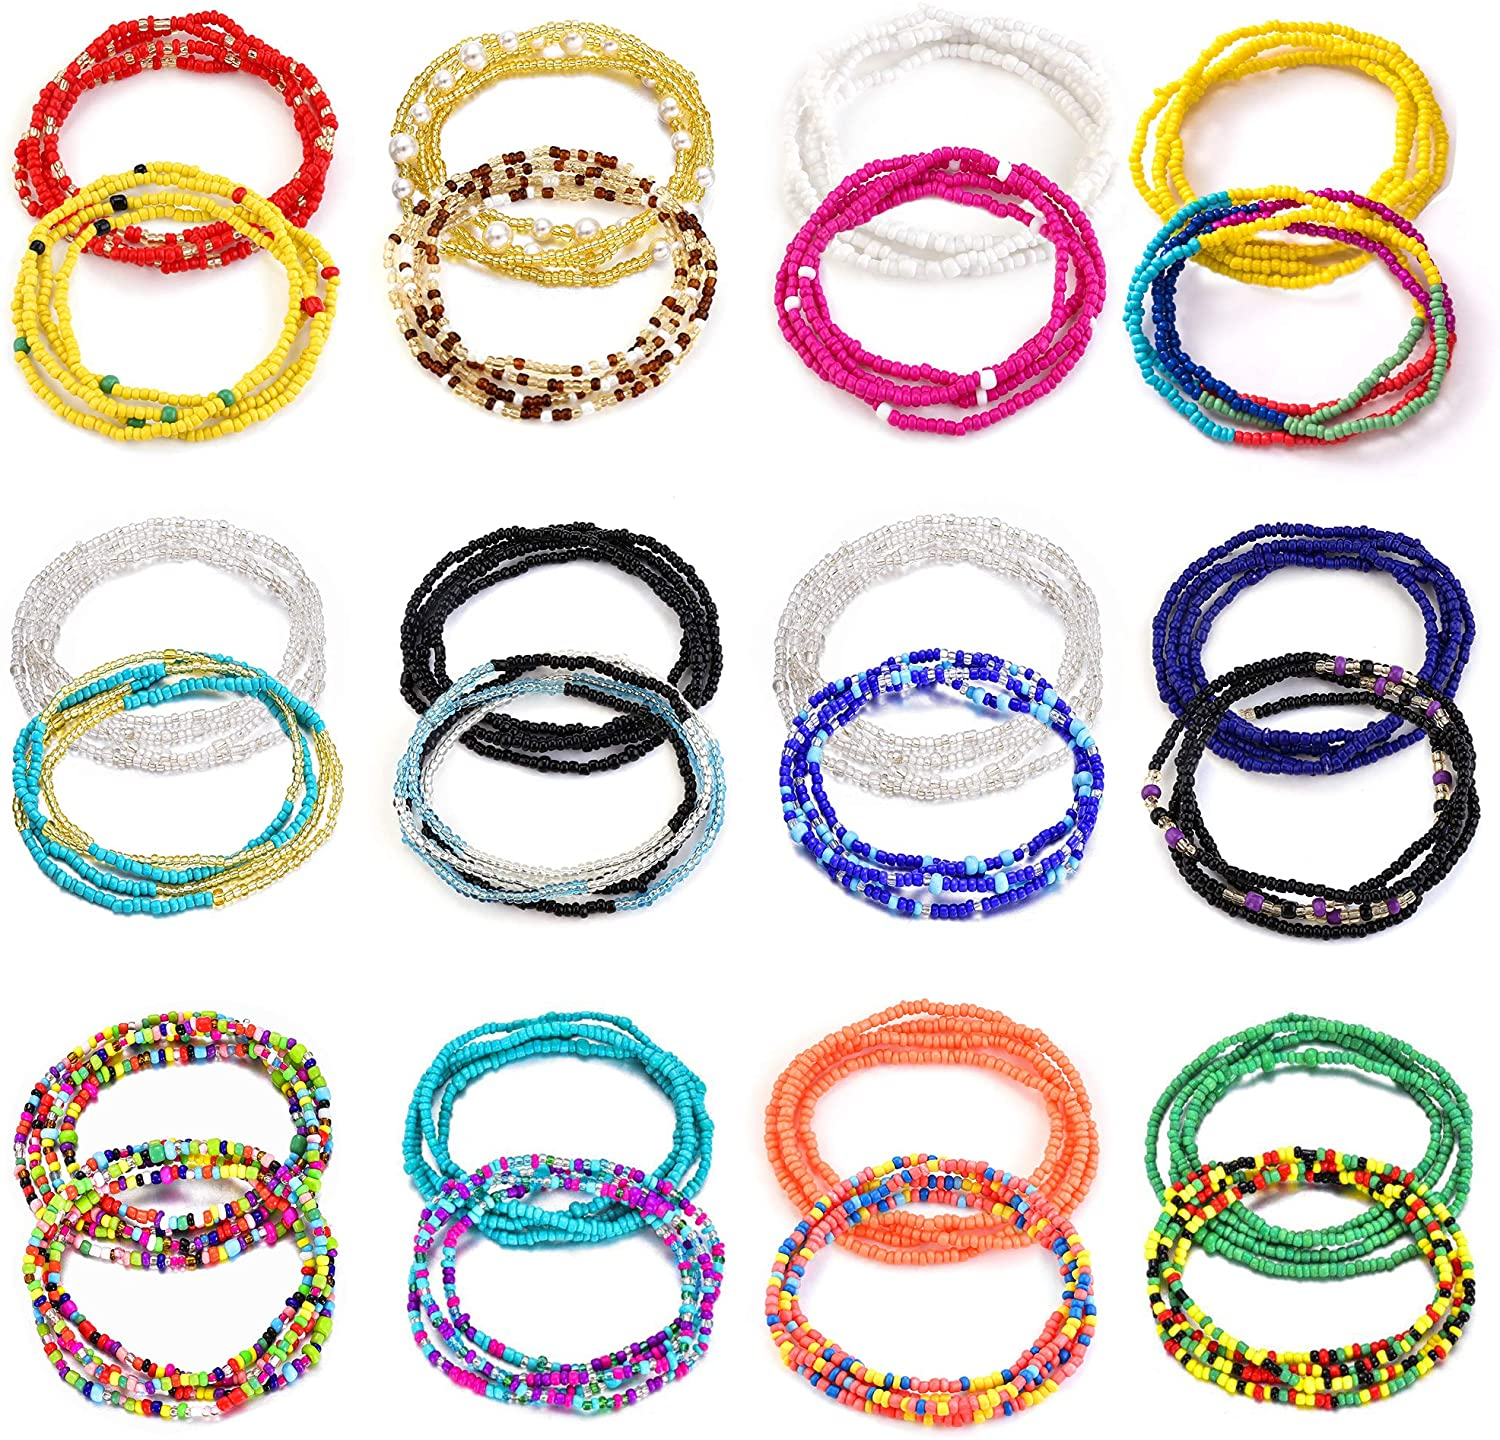 TOBENY 24PCS Waist Bead Chains for Women Colorful Summer Body Chains Belly Beads Bikini Jewelry Chains Bead Waist Chains Set